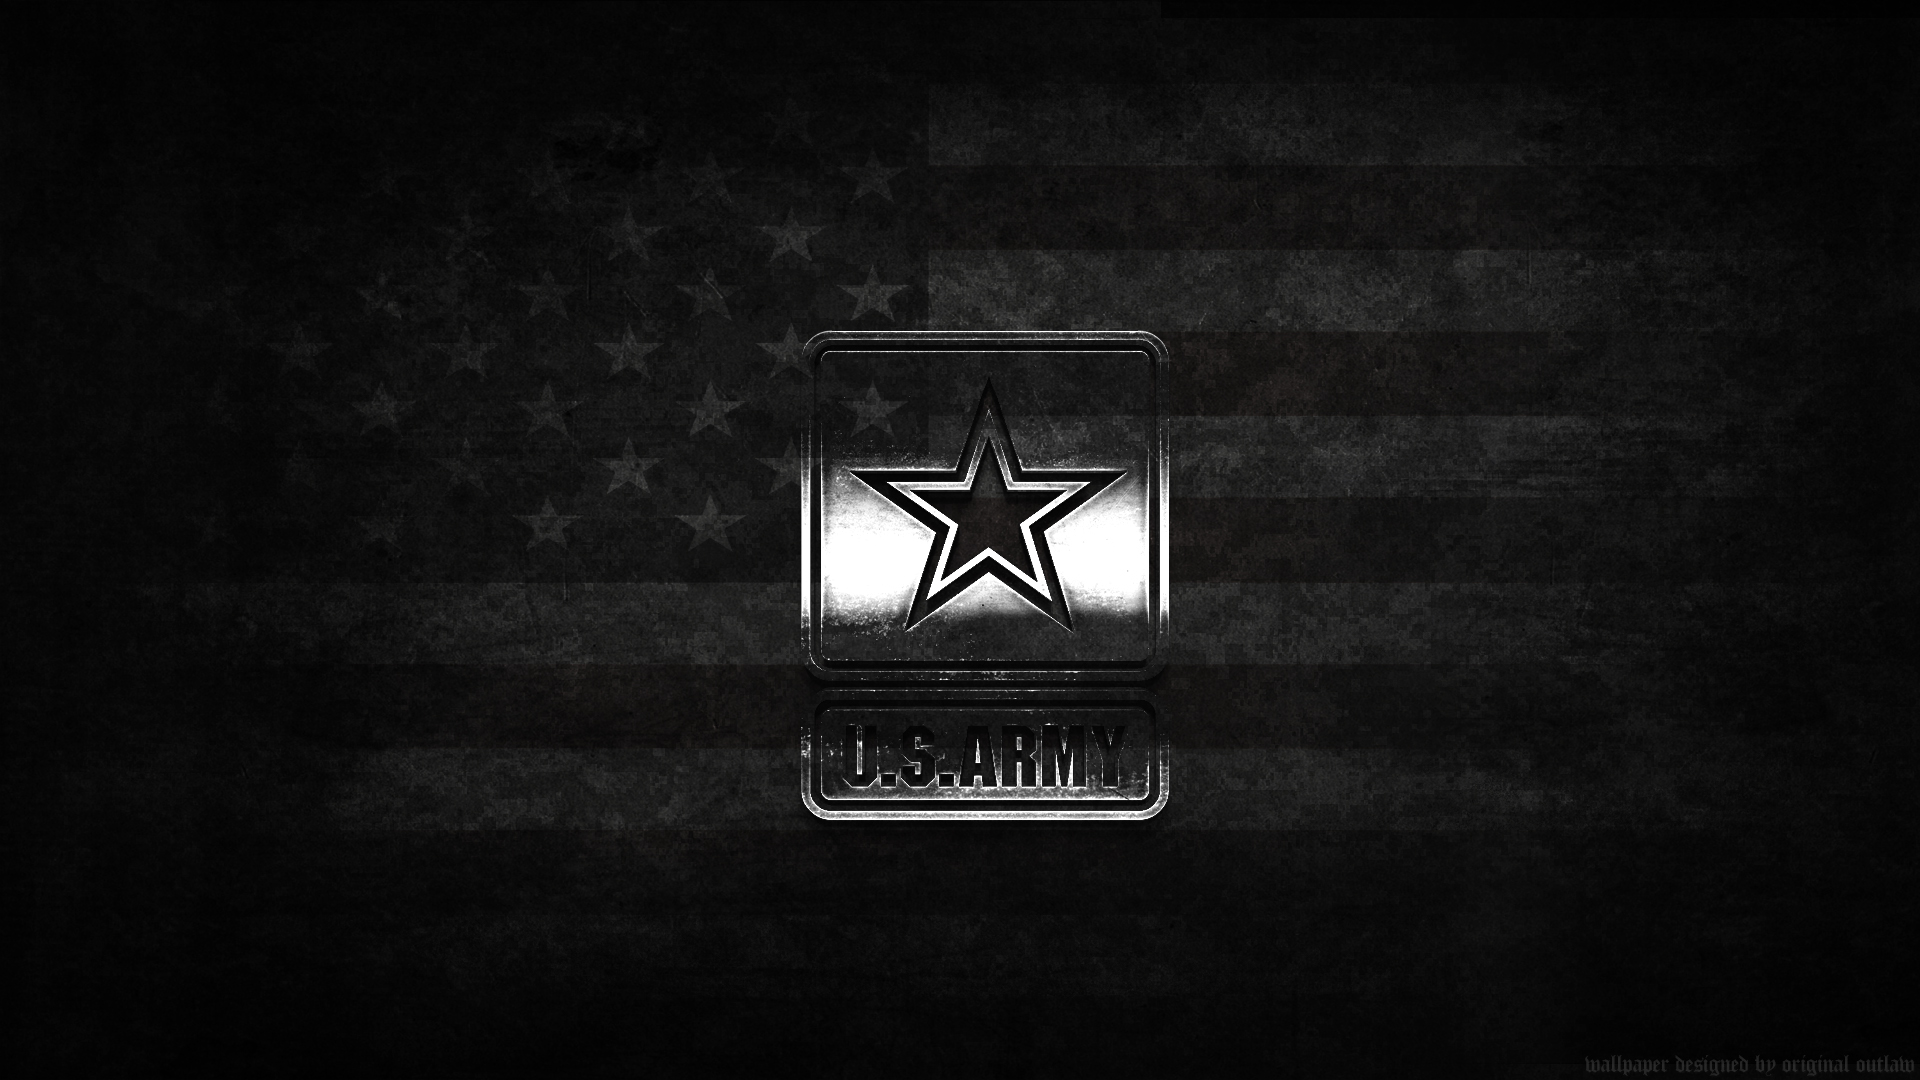 Download image Wallpapers Military Wallpaper United States Army Screen 1920x1080